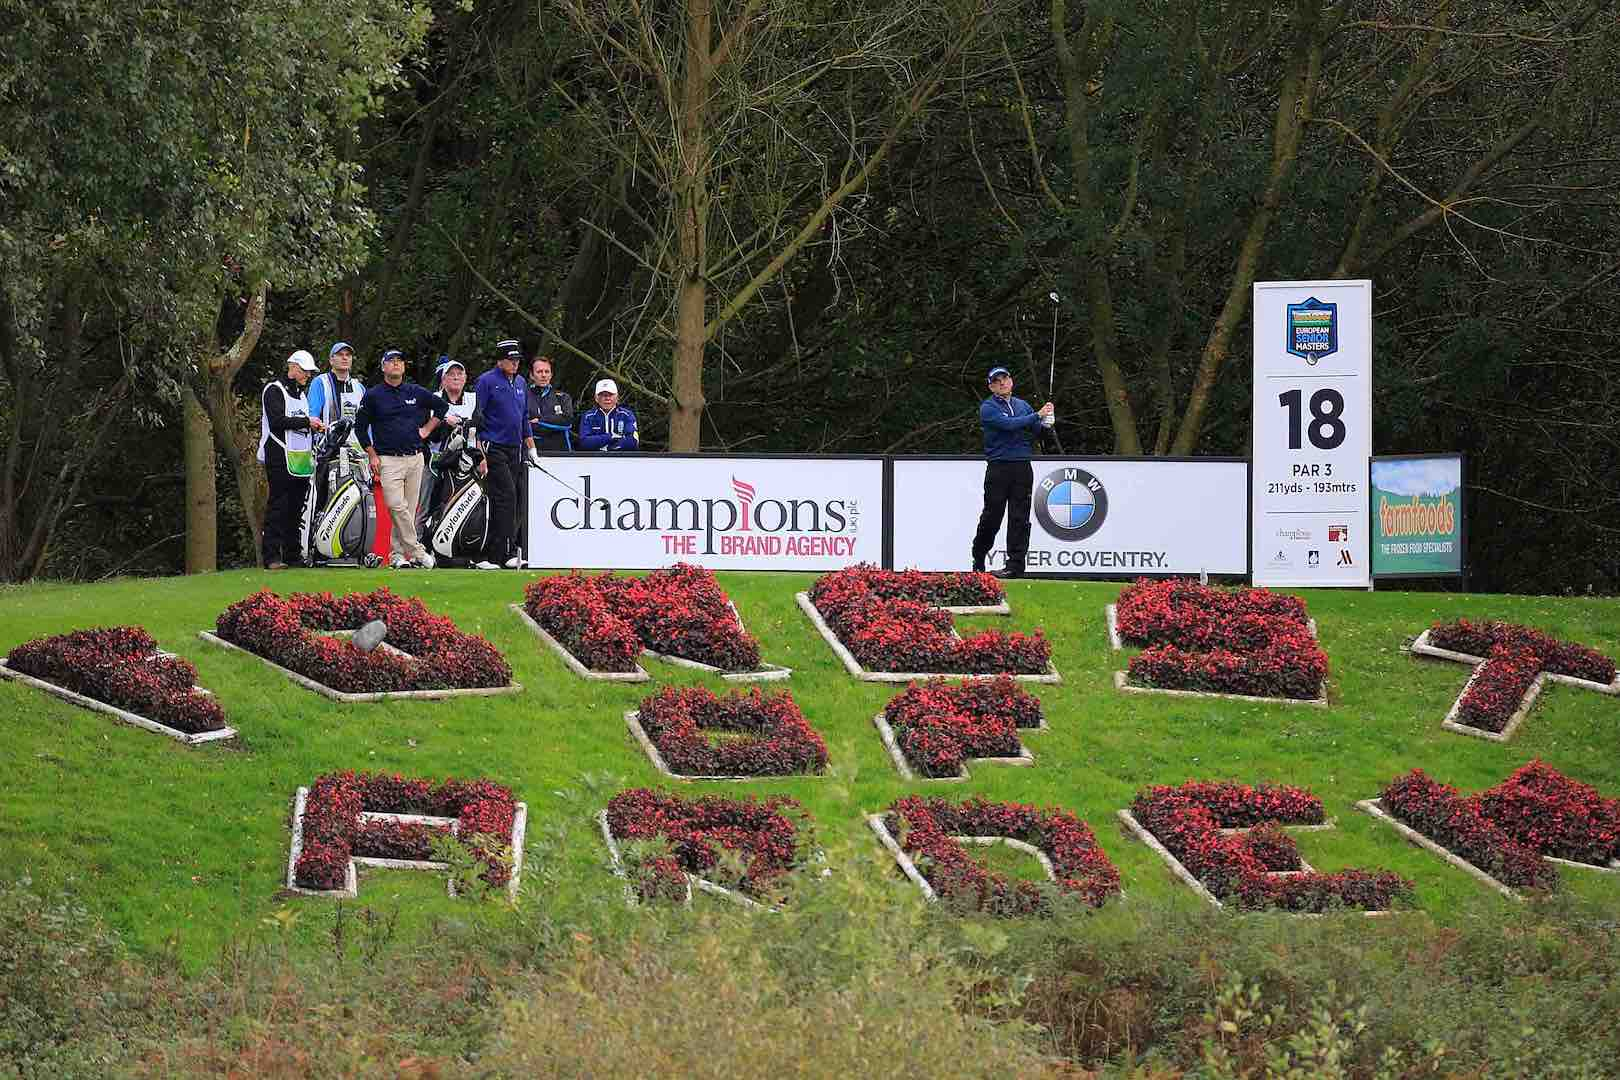 European Senior Masters returns to the Forest of Arden